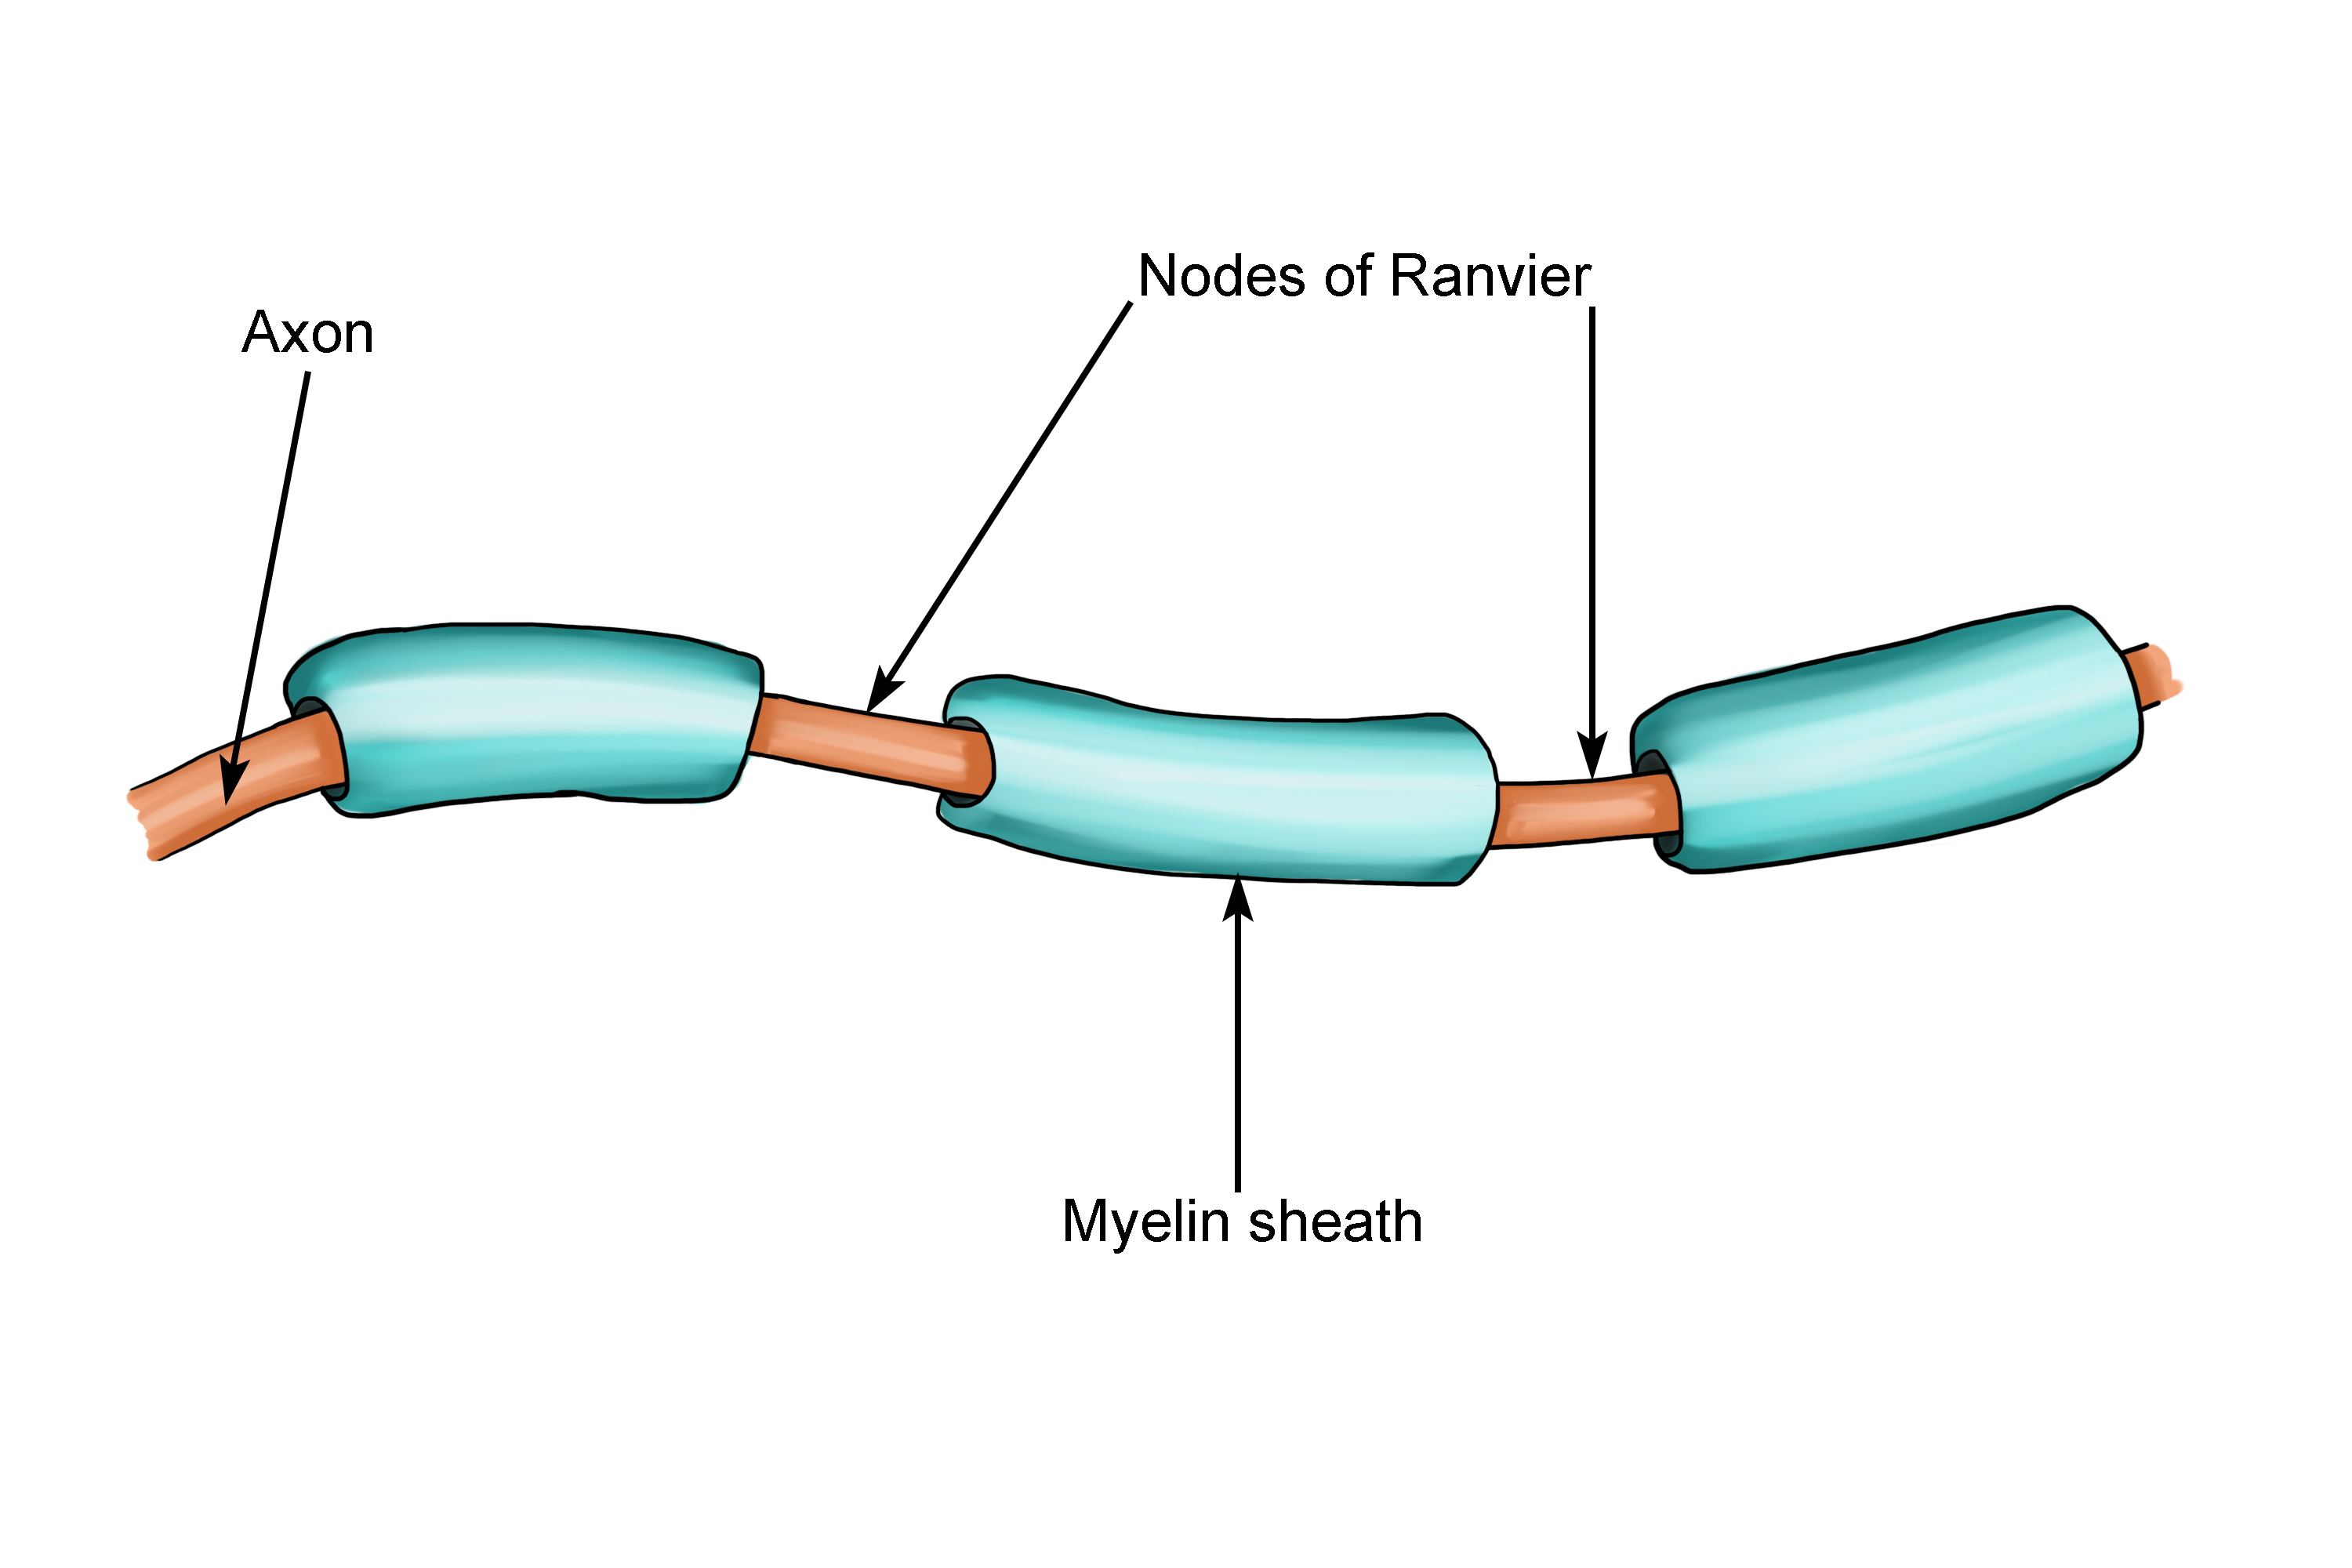 Diagram showing the consecutive gaps of Ranvier and the myelin sheath